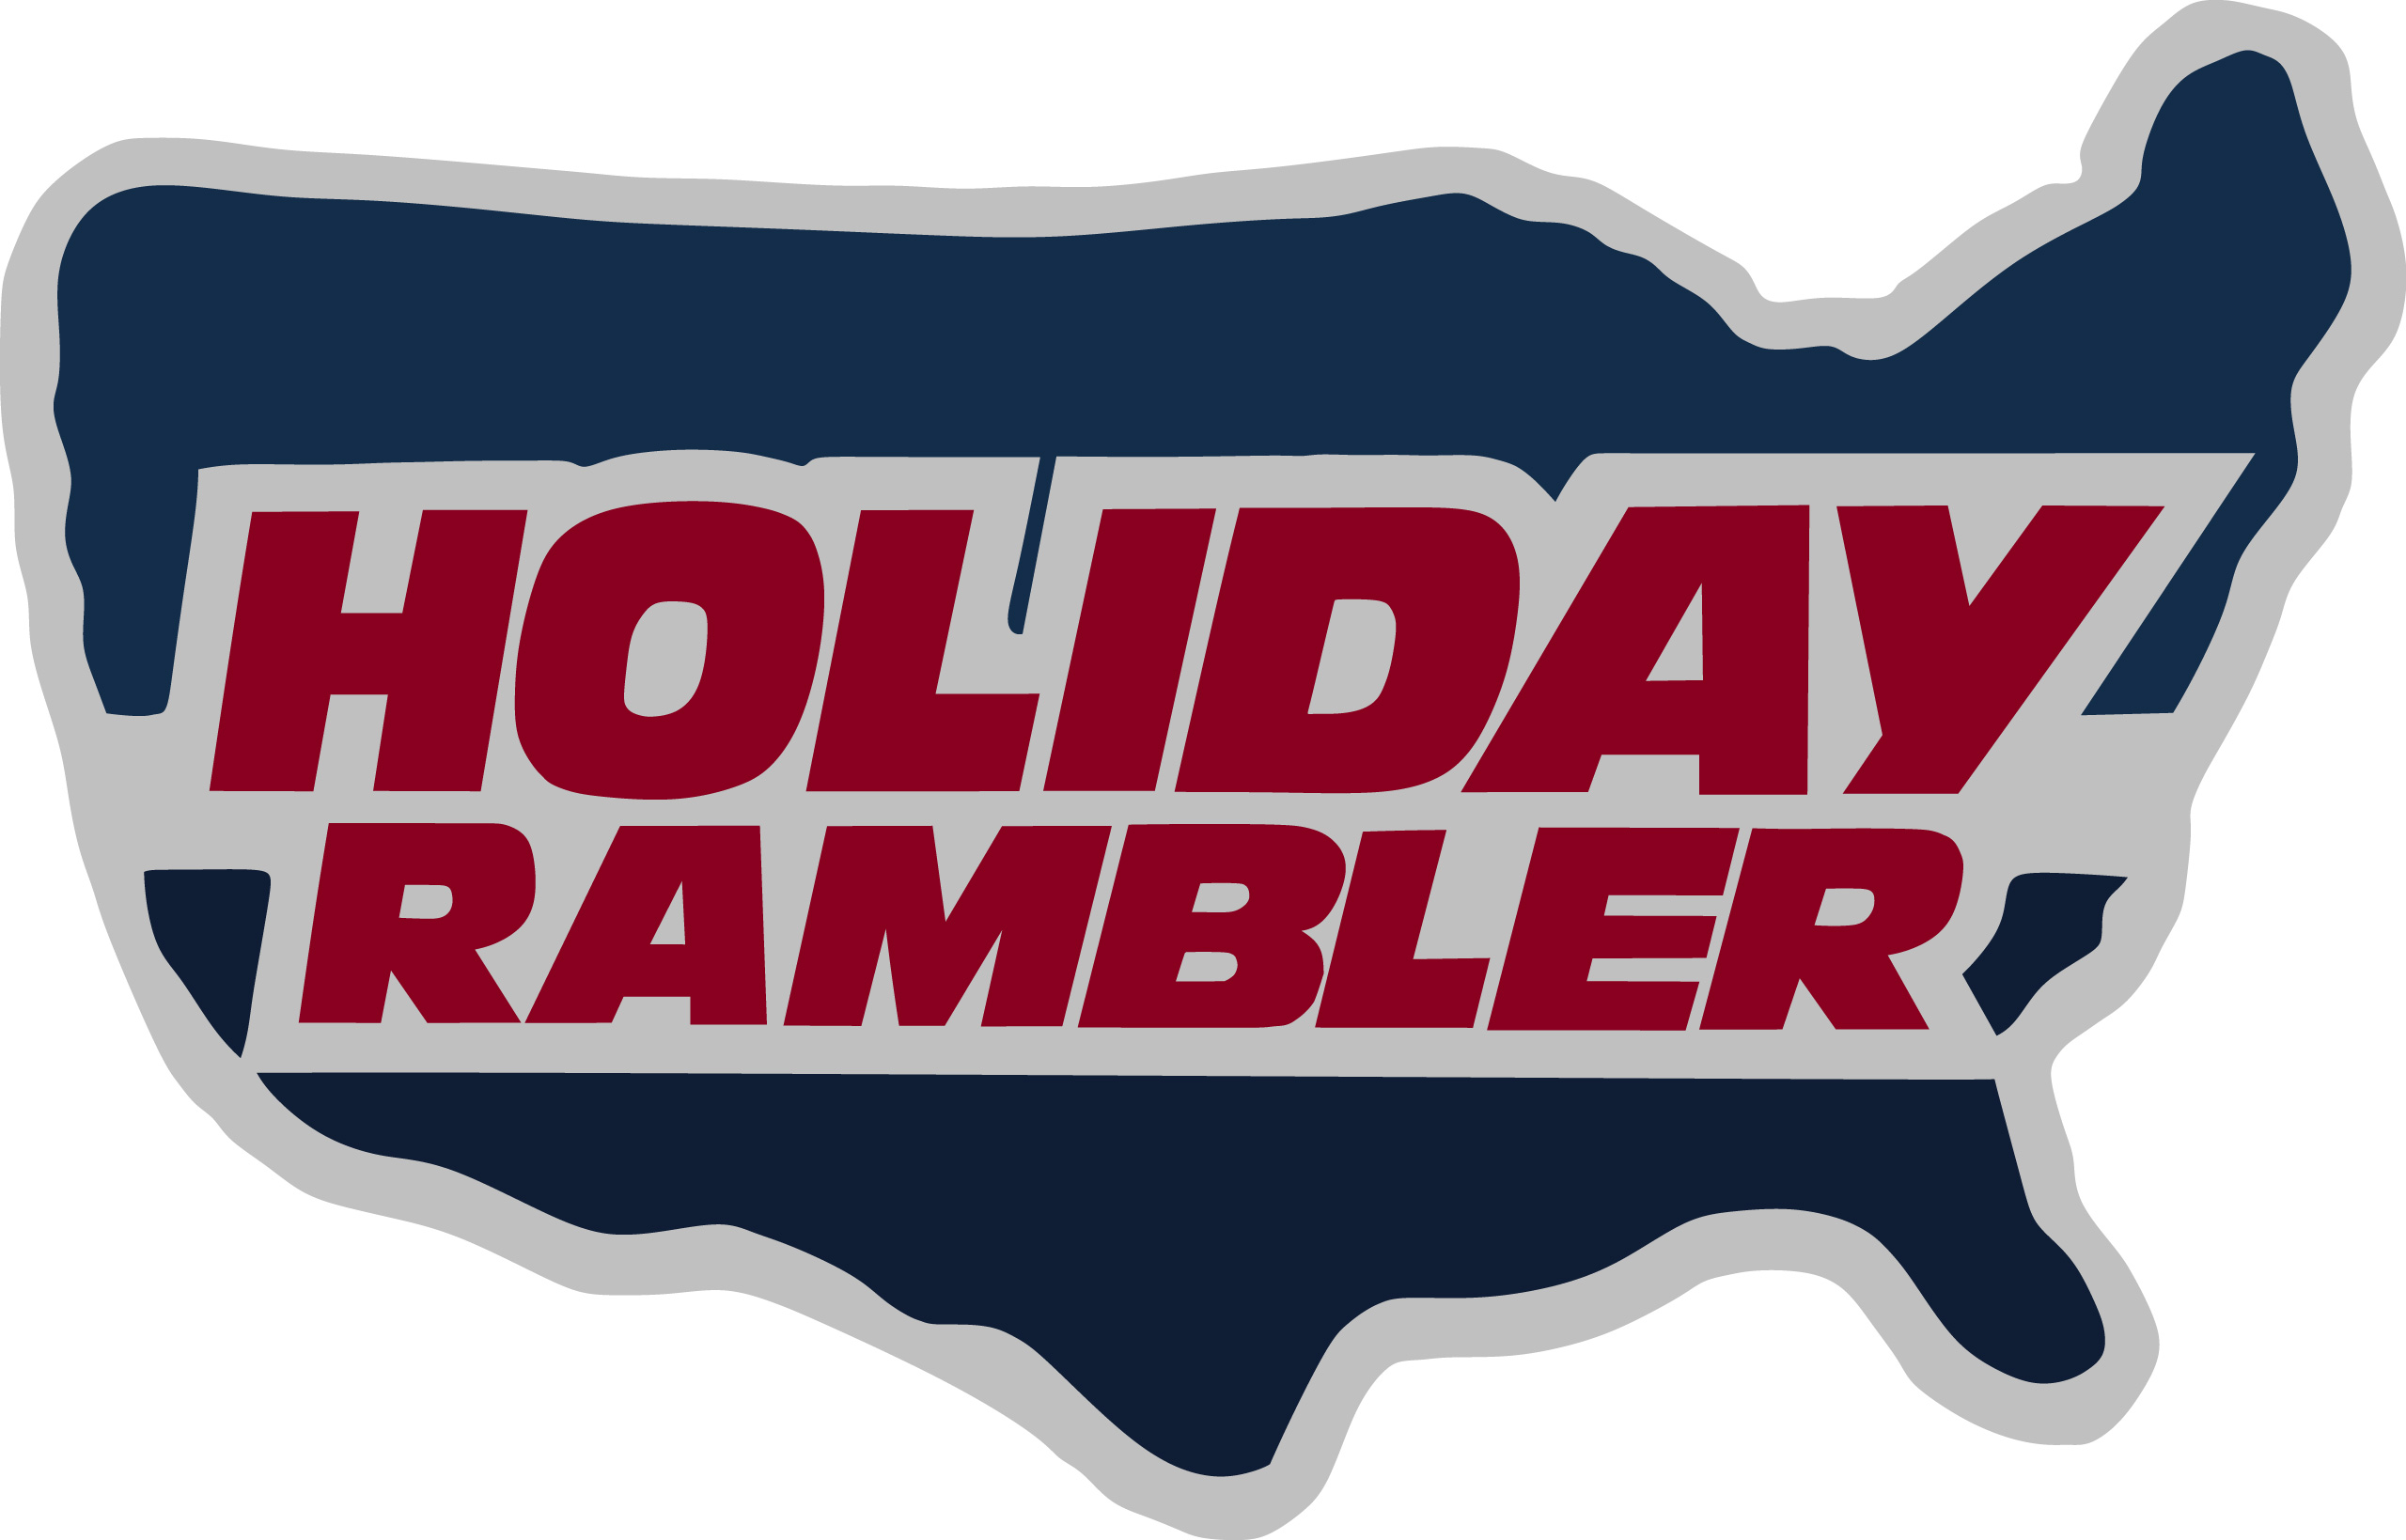 Holiday Rambler Reproduction RV Camper Logos